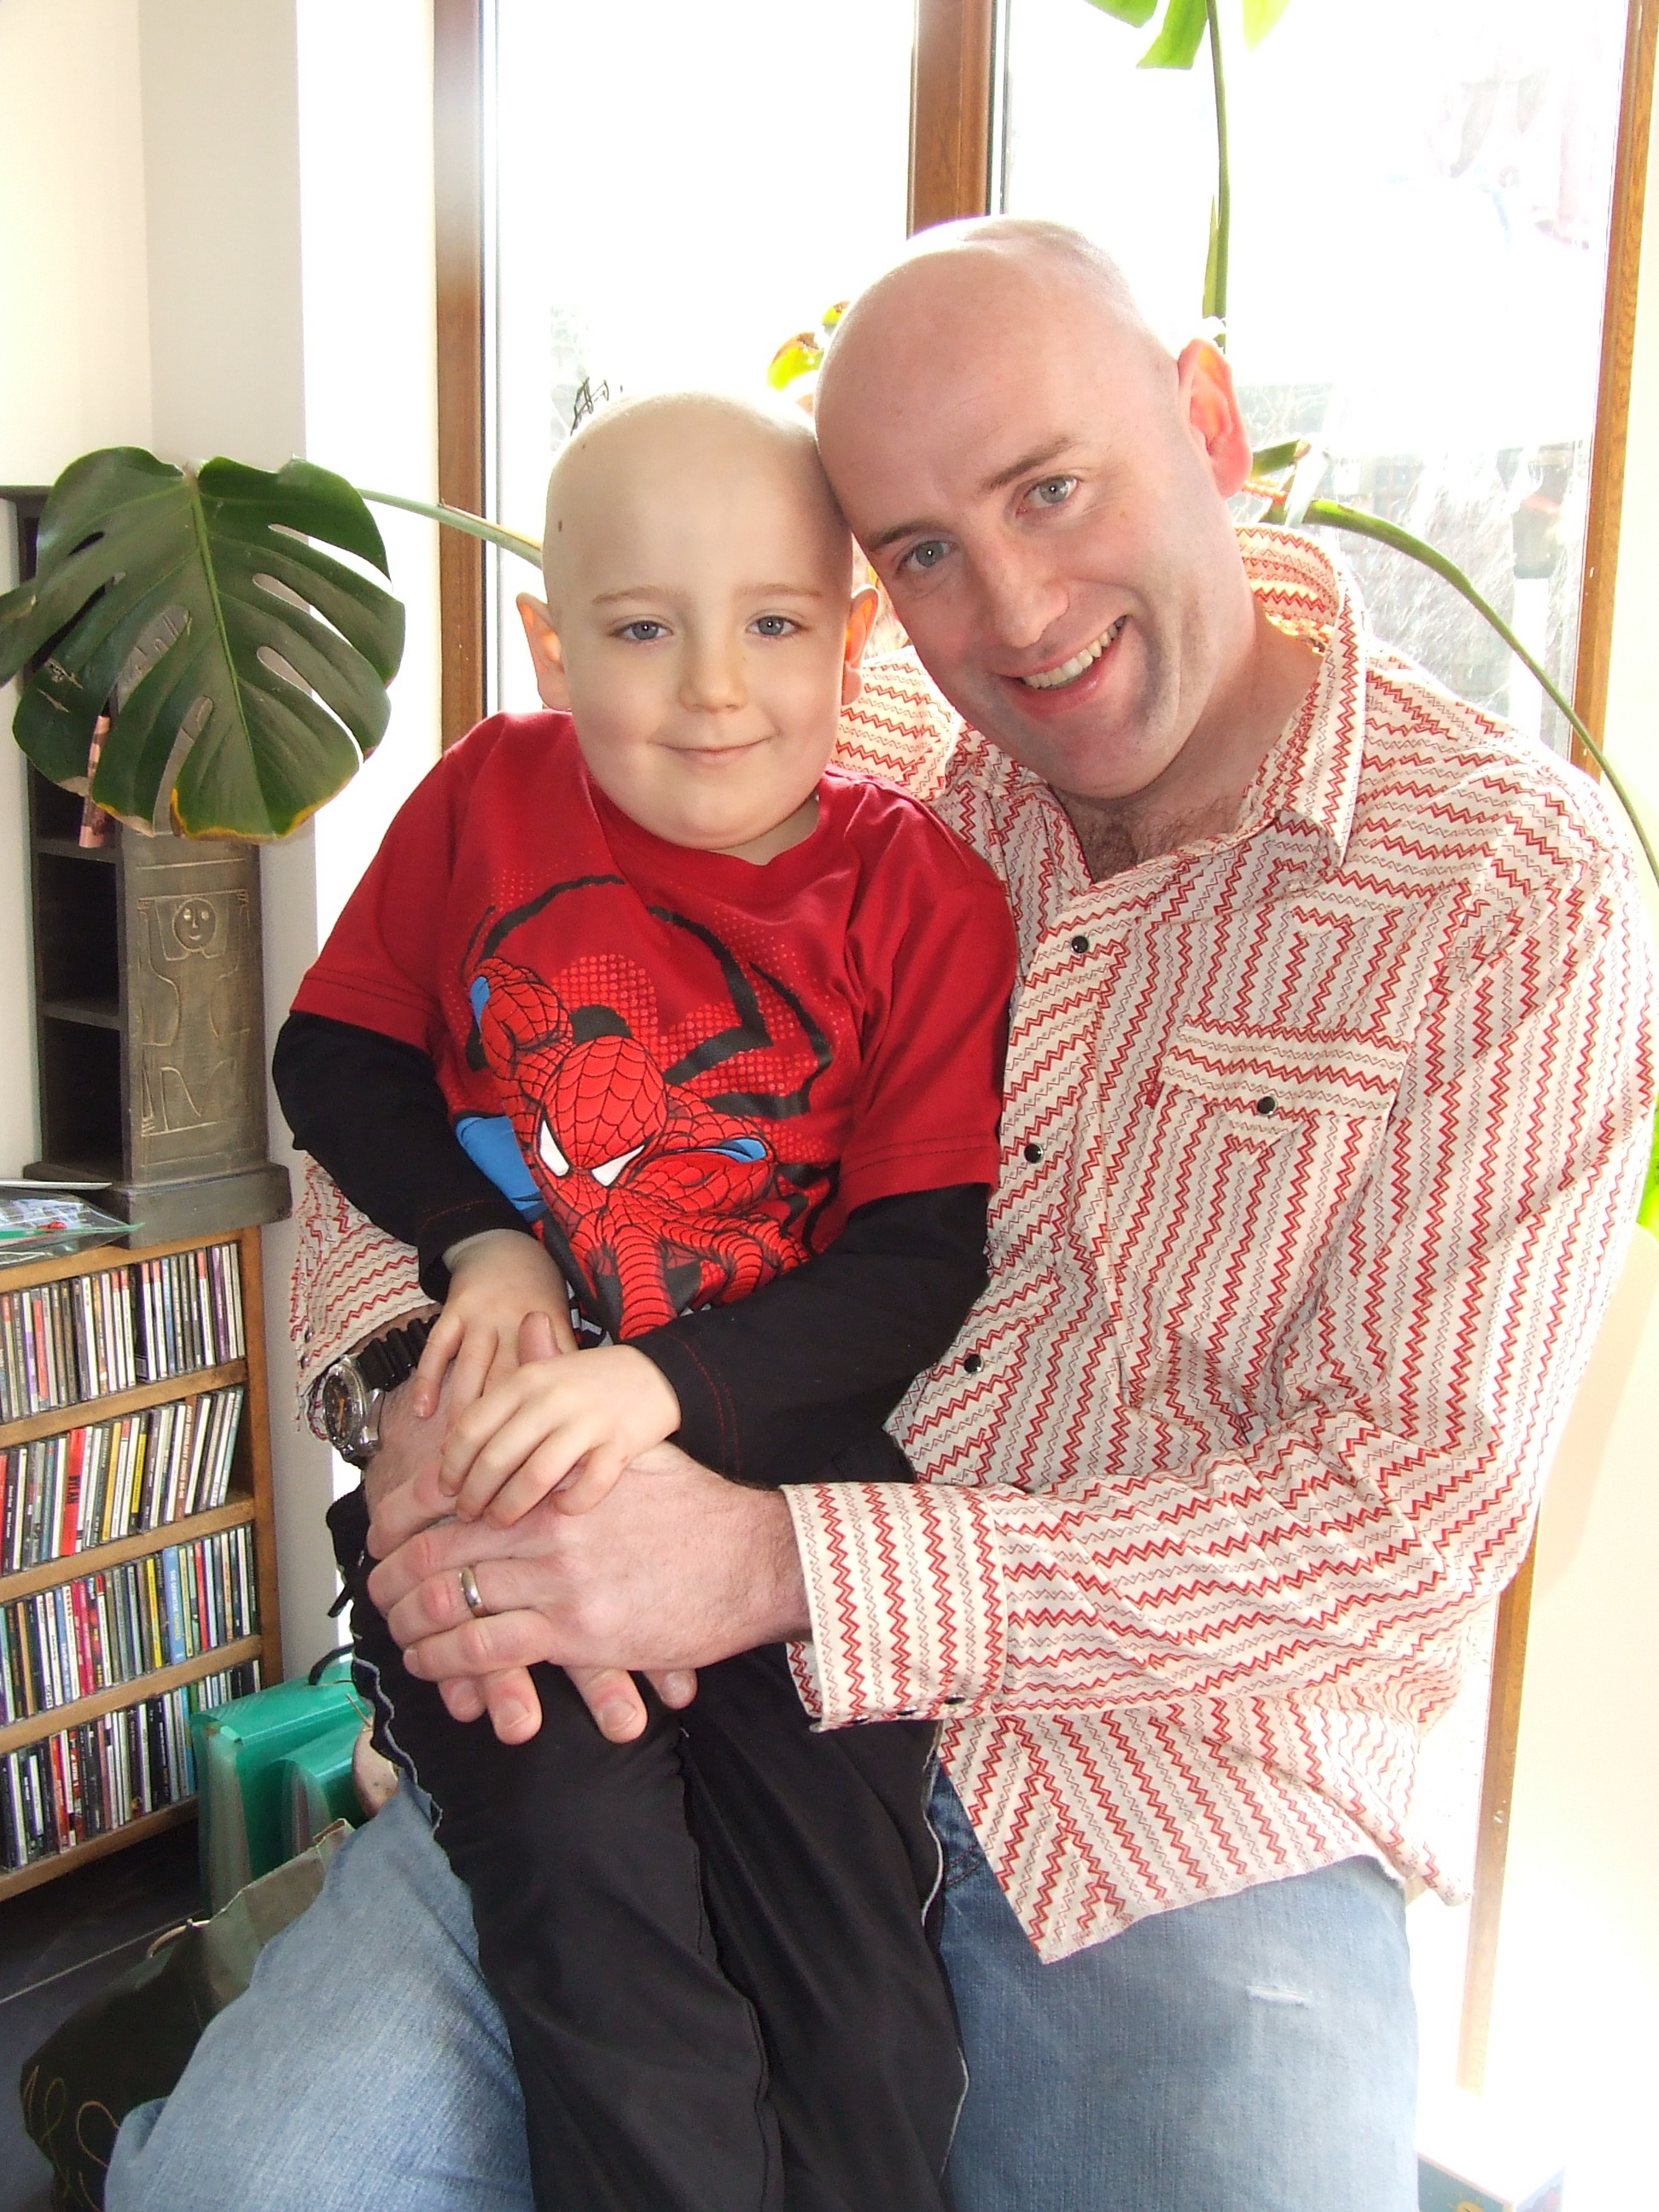 Vincent and Callan Donegan - Going through Treatment